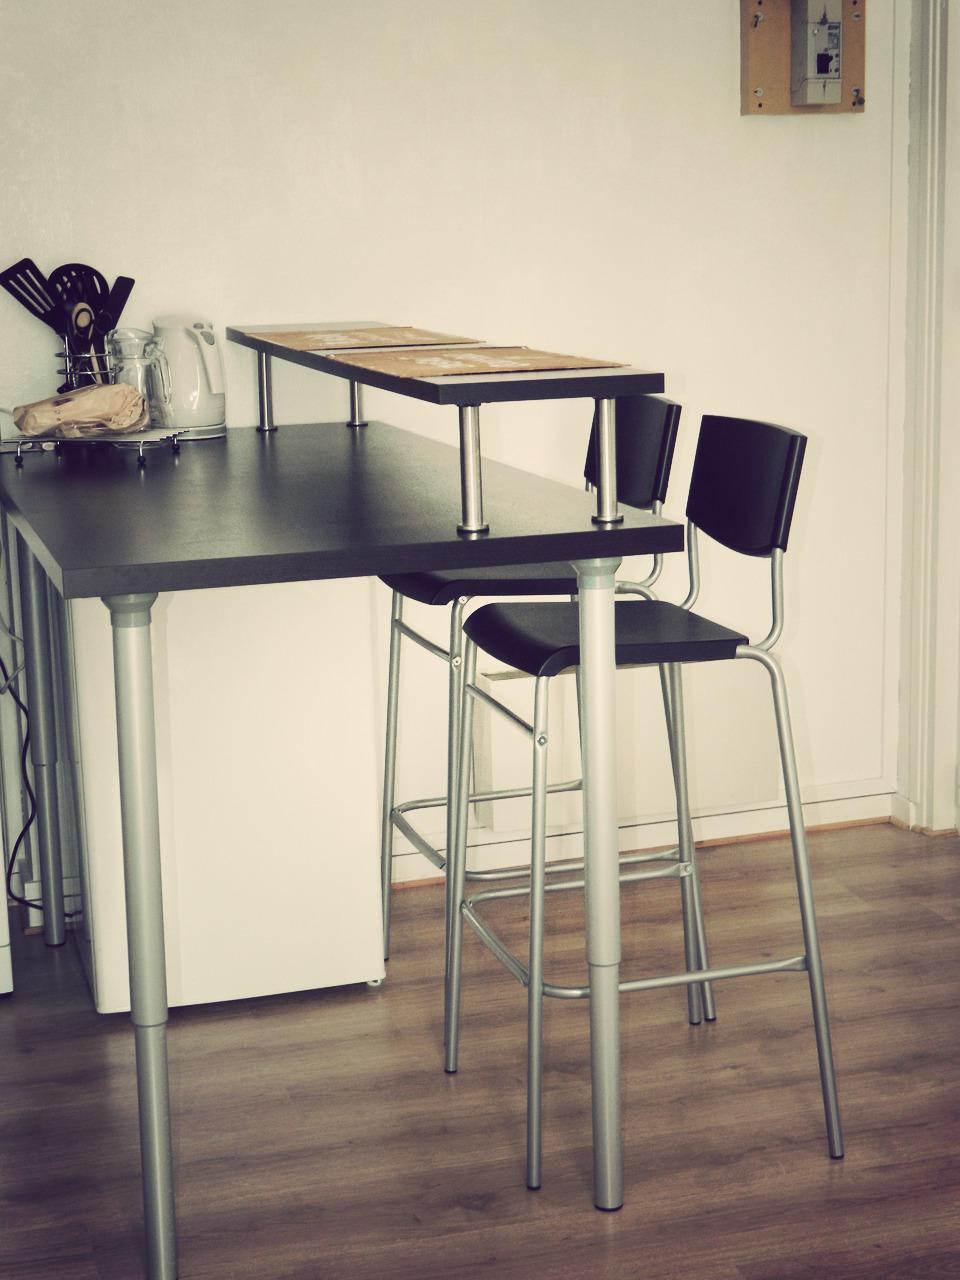 Table Avec Rallonge Pas Cher Bar D'appartement Ikea – Table De Lit